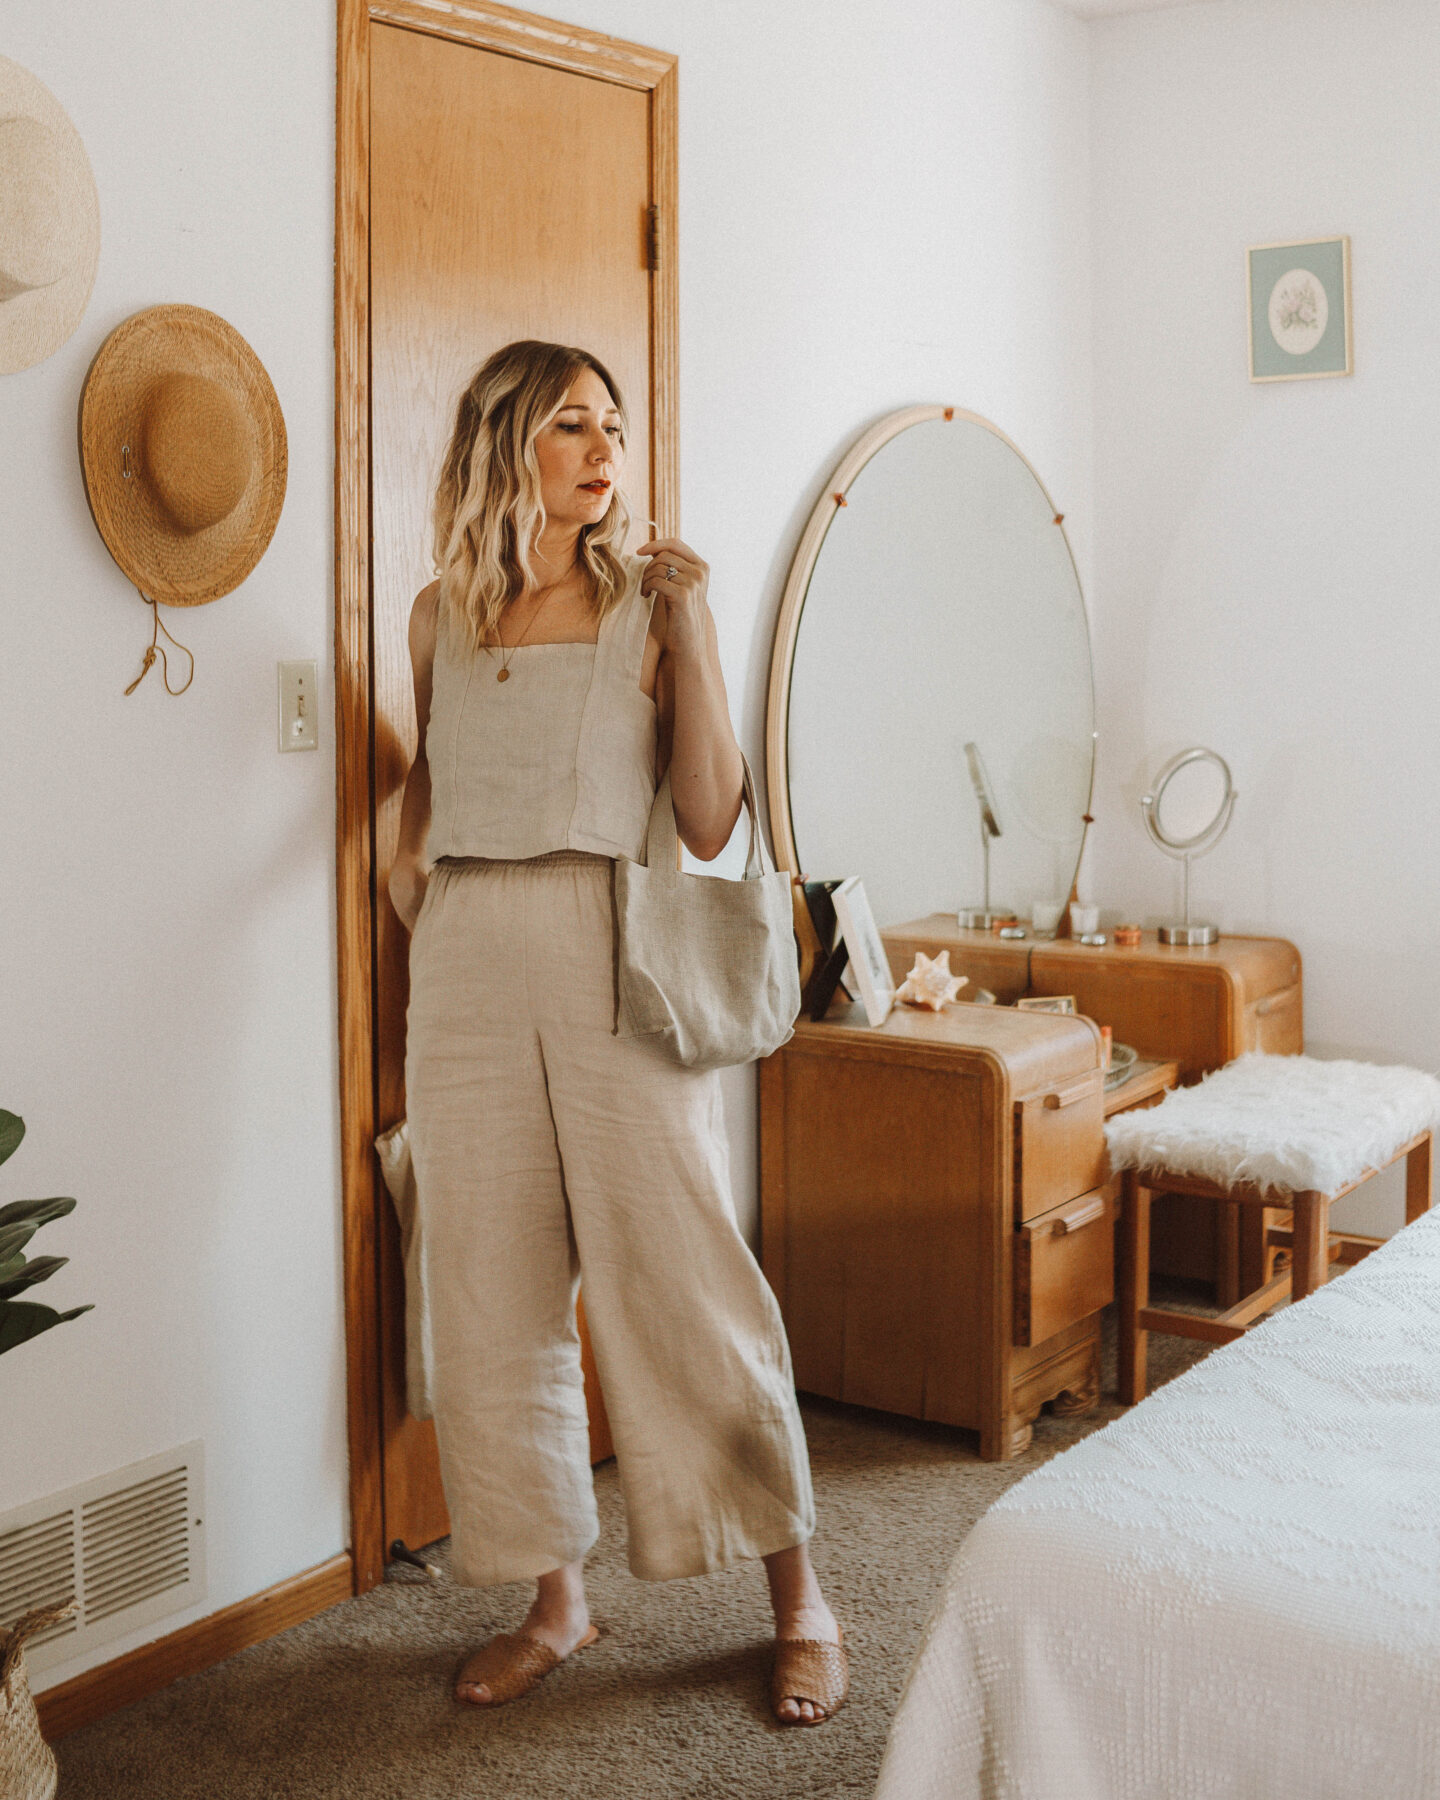 How to Style Wide Leg Pants + 6 Outfit Ideas, linen two piece set, sugar candy mountain, love & confuse linen, shin + na linen mitaka small, either/or nyc woven slides in miel